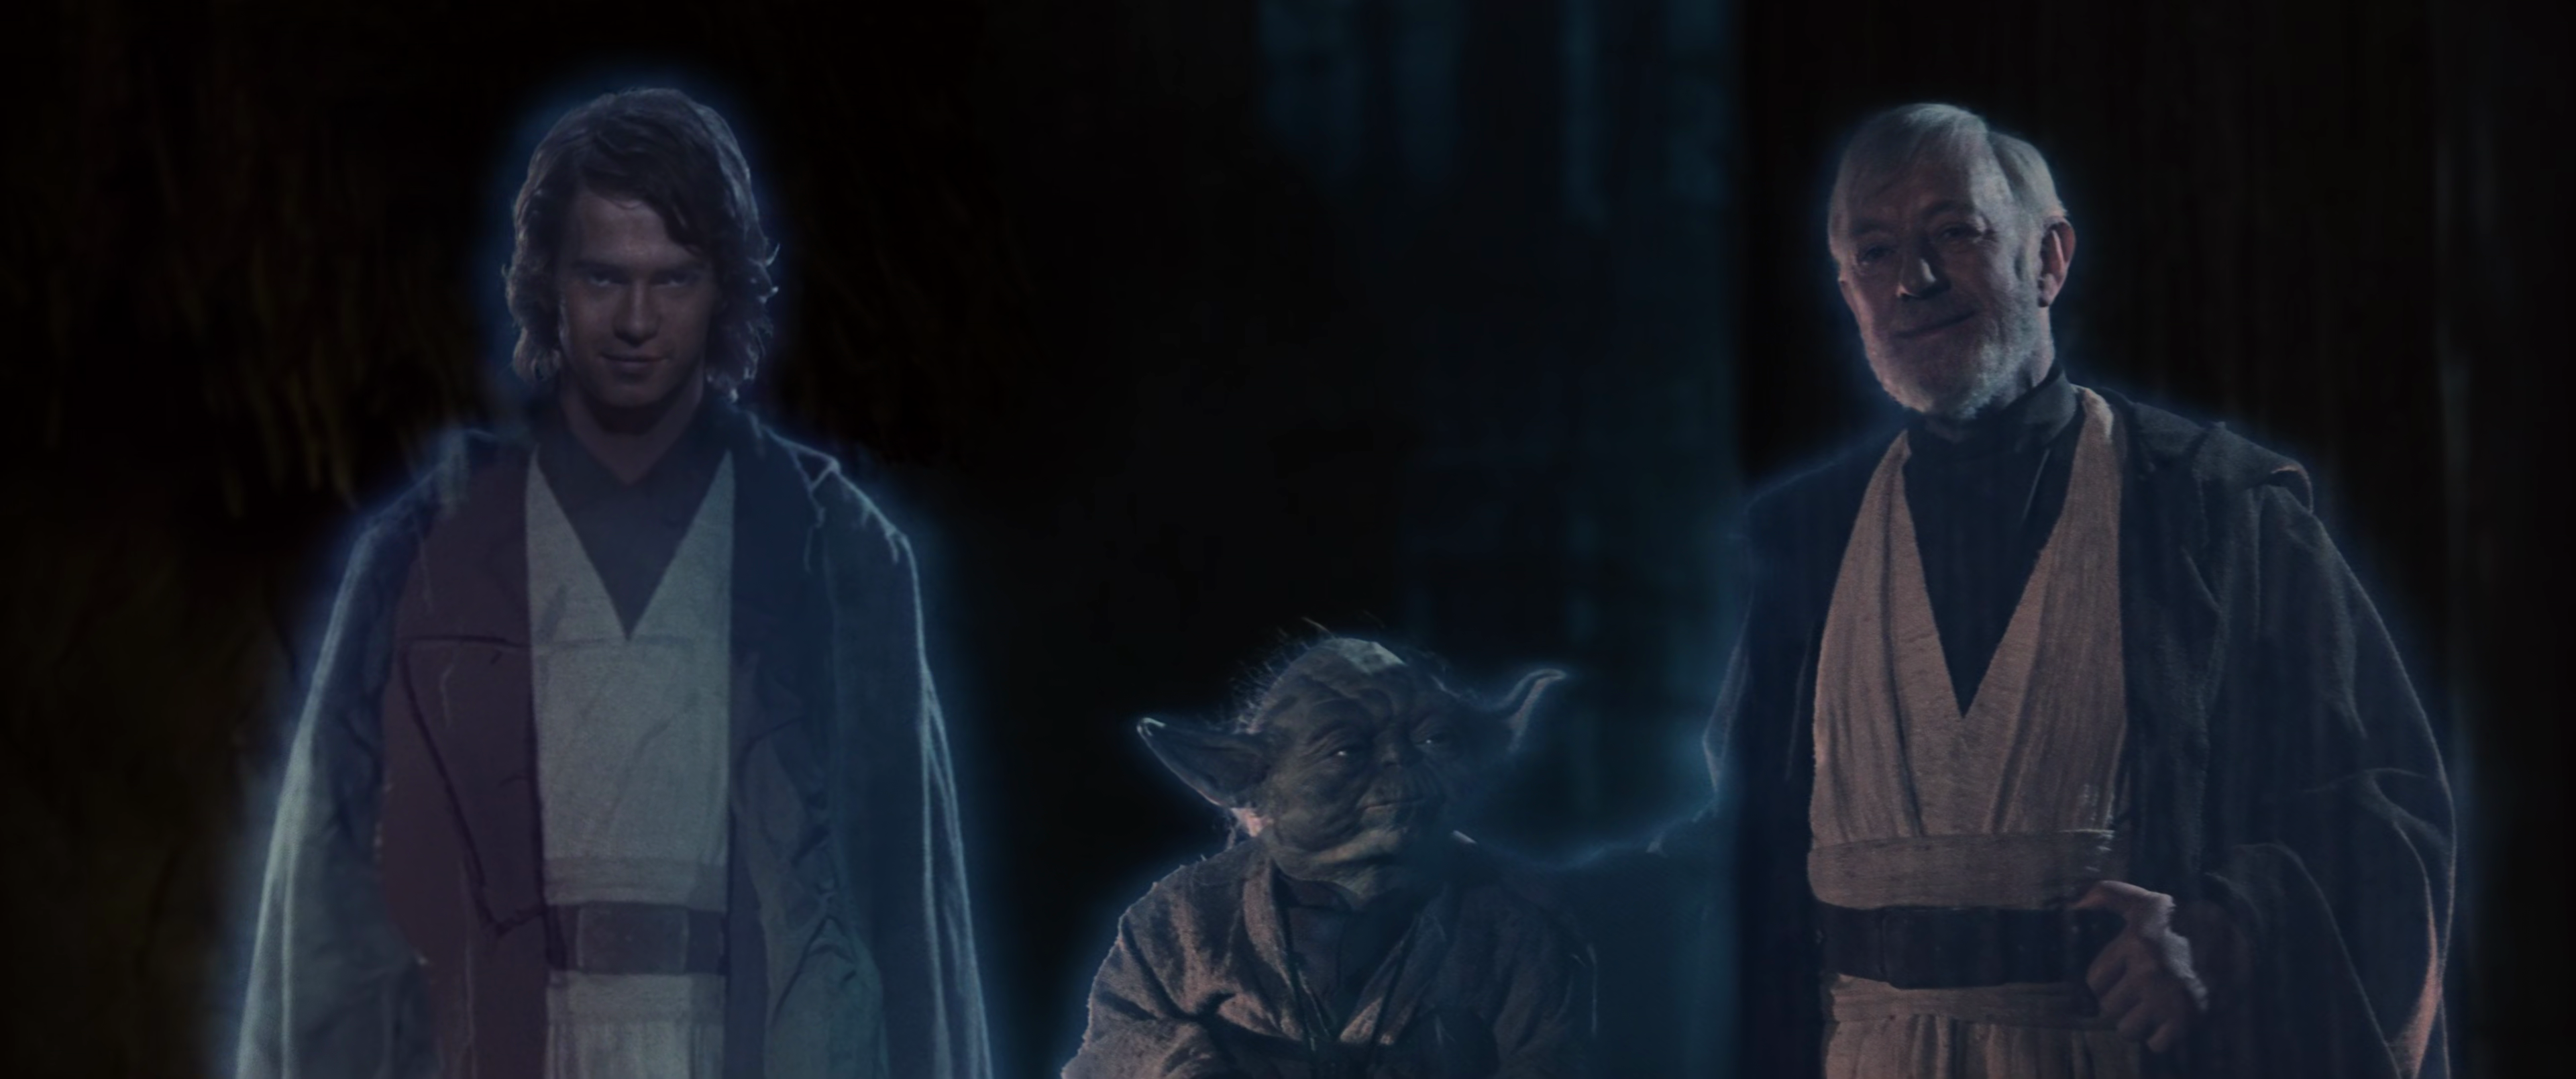 Yoda Force Ghost Luke Saw The Force Ghosts of